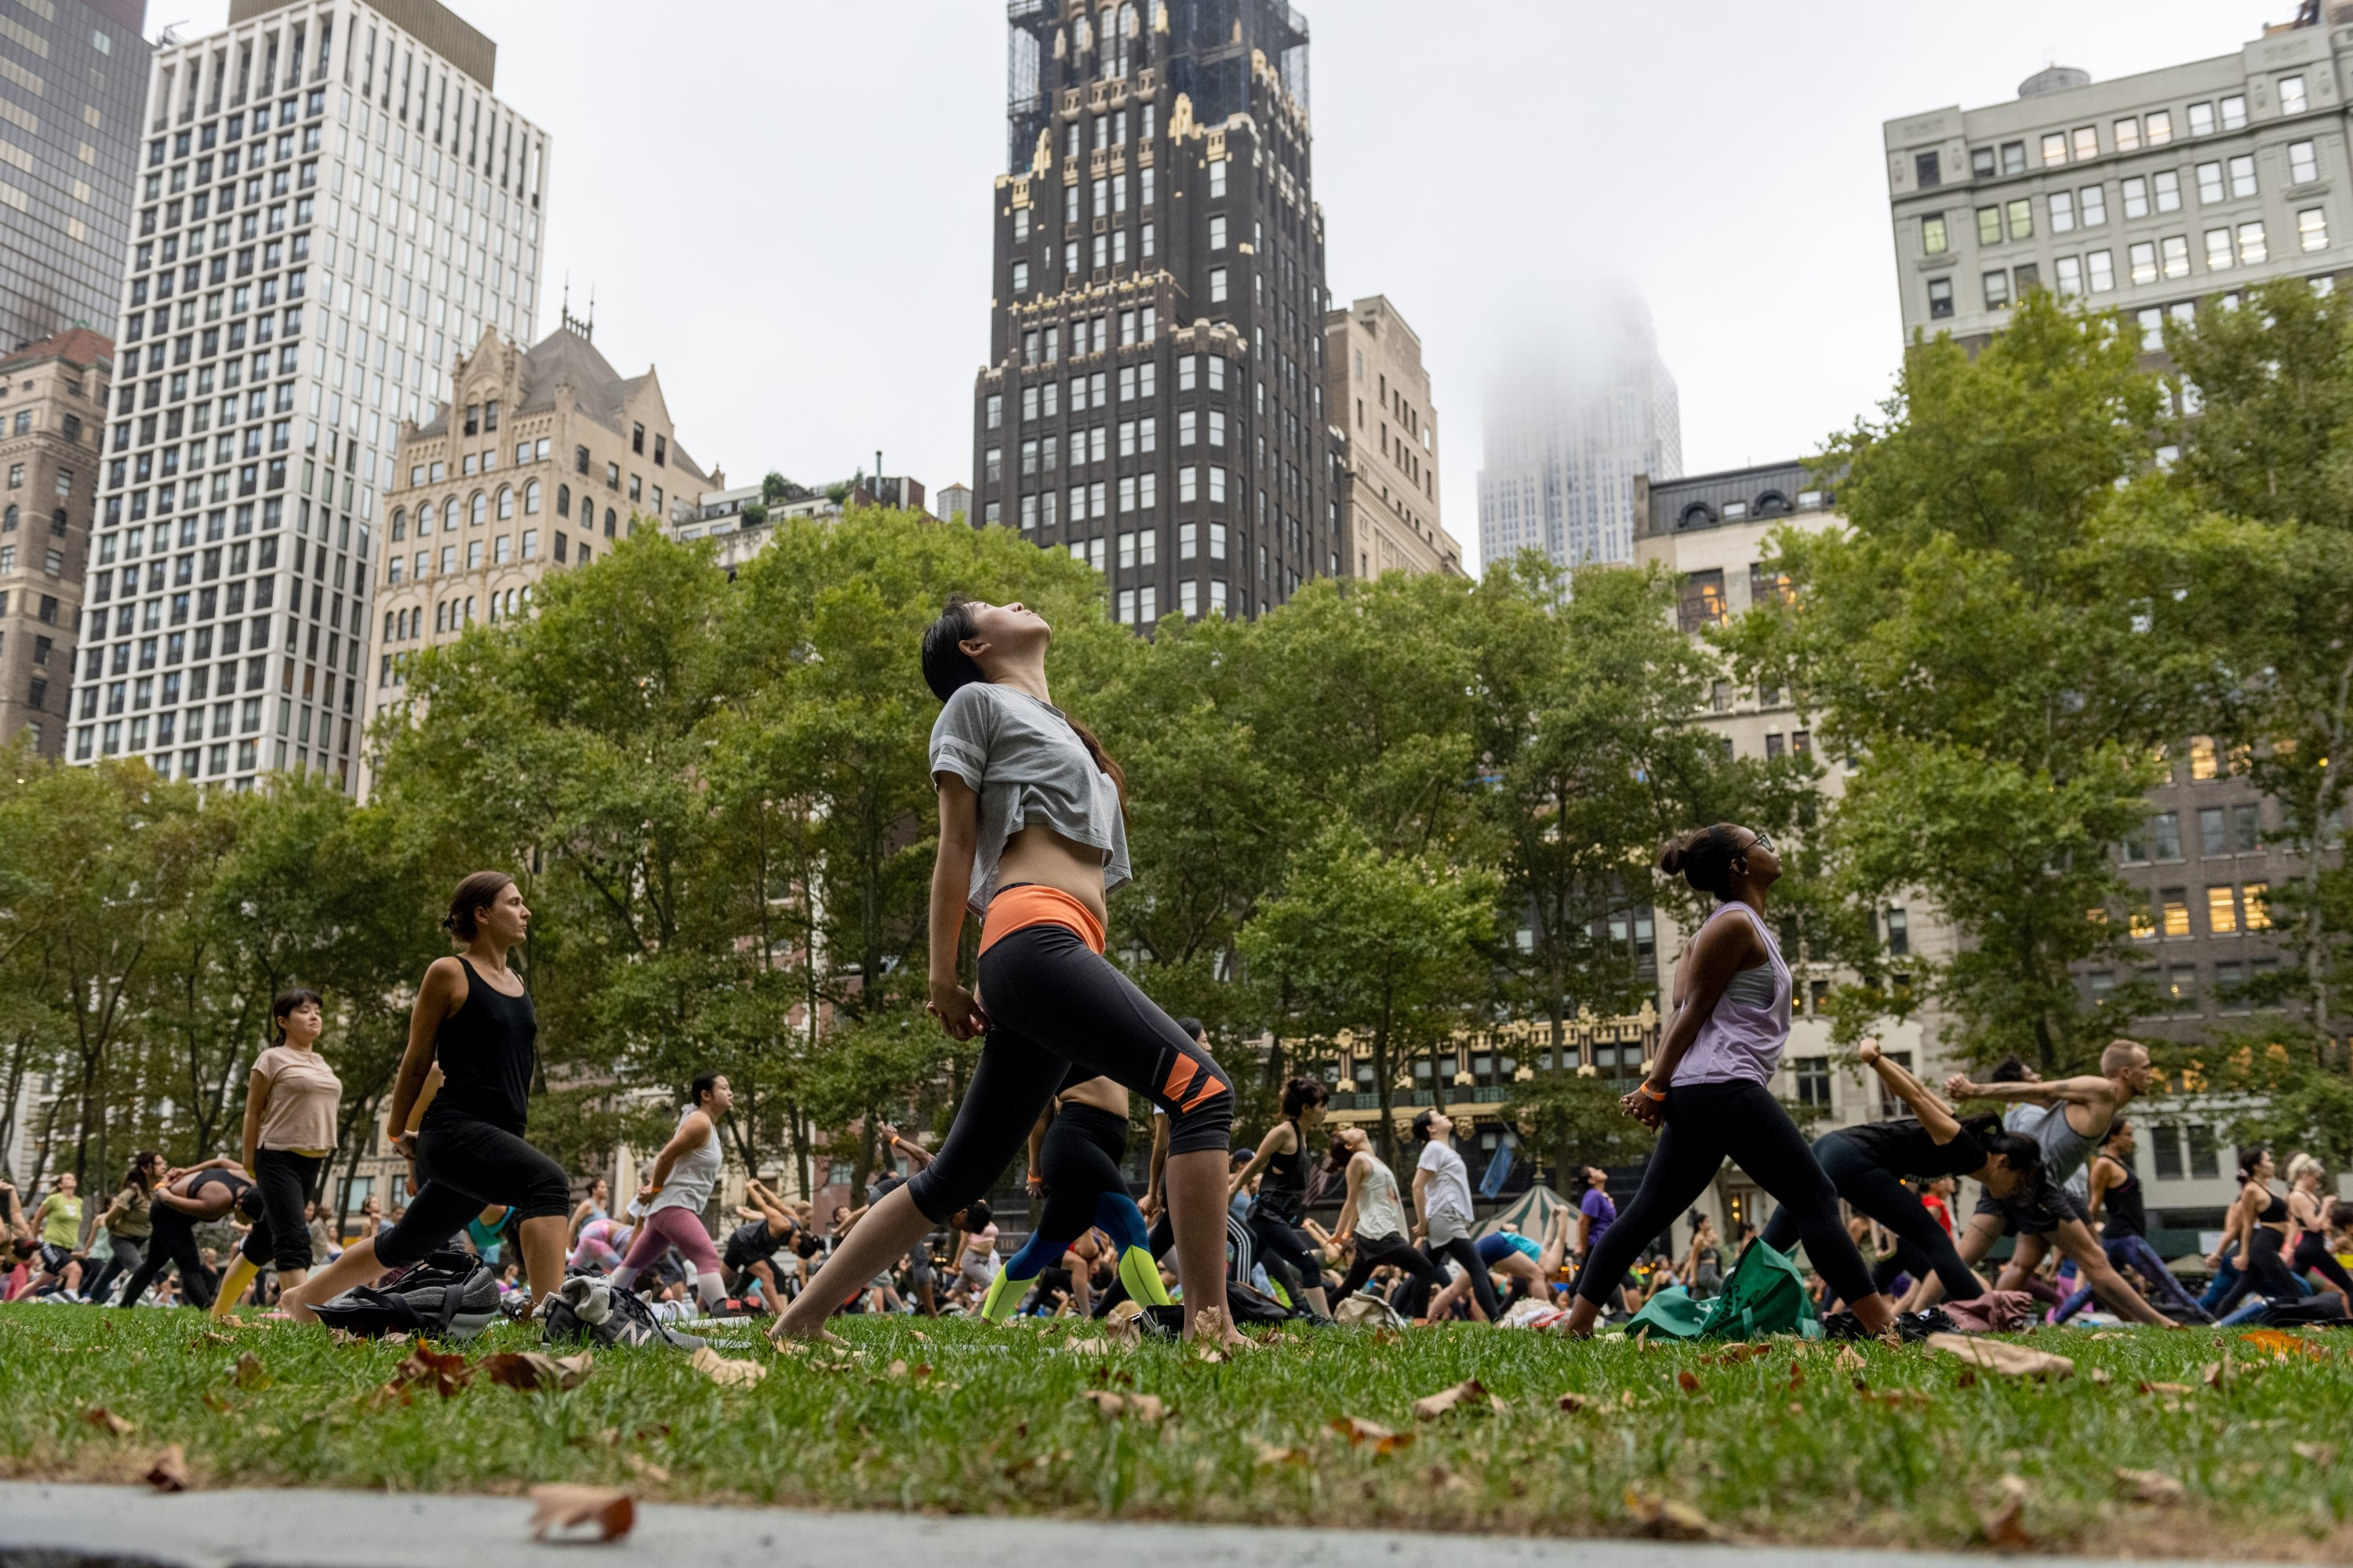 People do yoga on the grass in Bryant Park with a view of the Empire State Building in the background, in New York City, New York, U.S., Aug. 18, 2021. (Photo by Getty Images)